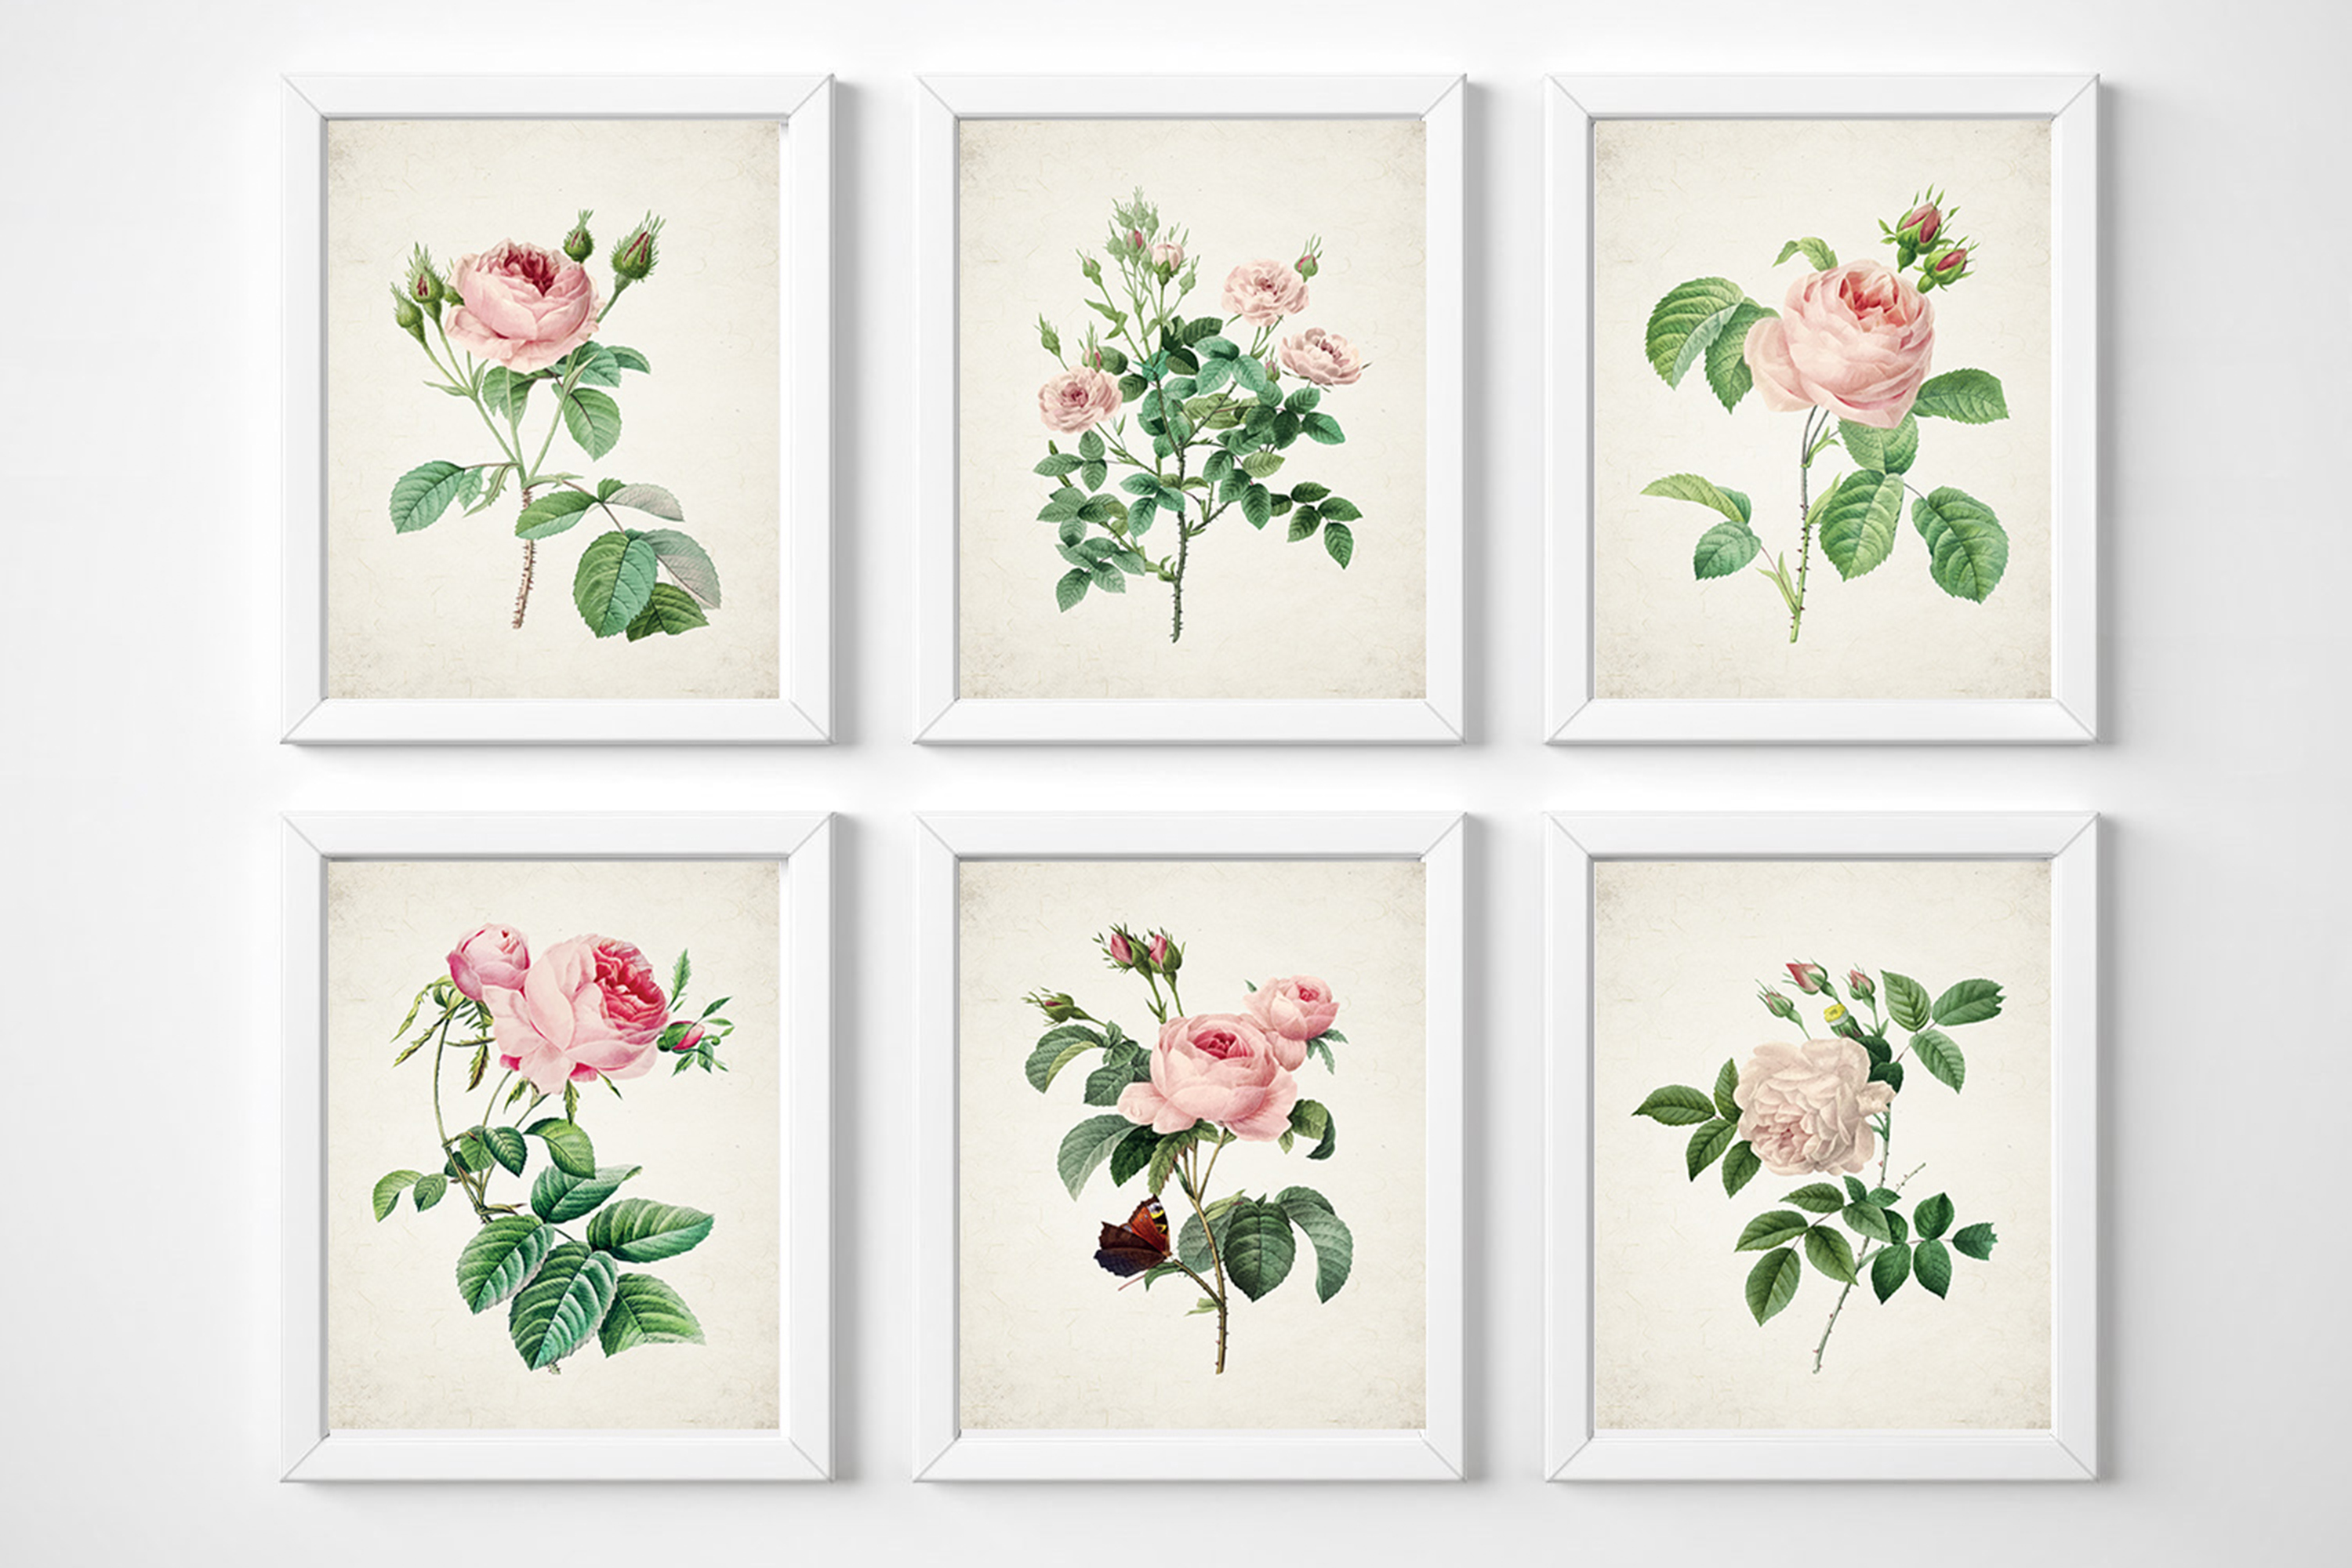 Rose Flower Wall Art, Rose Wall Art Print, Vintage Rose Art example image 1